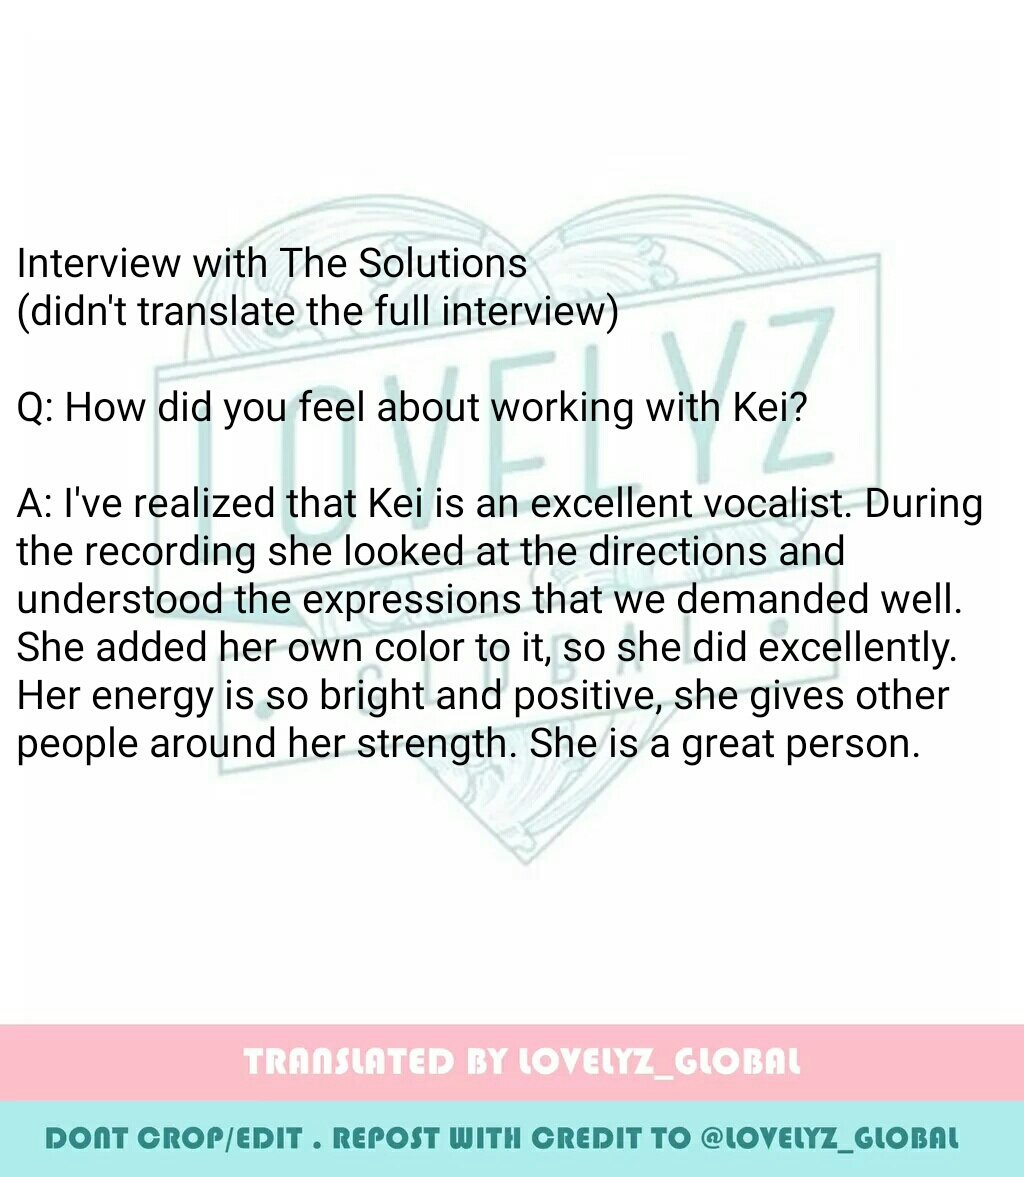 lovelyz global on twitter trans kei x the solutions beautiful retweets 125